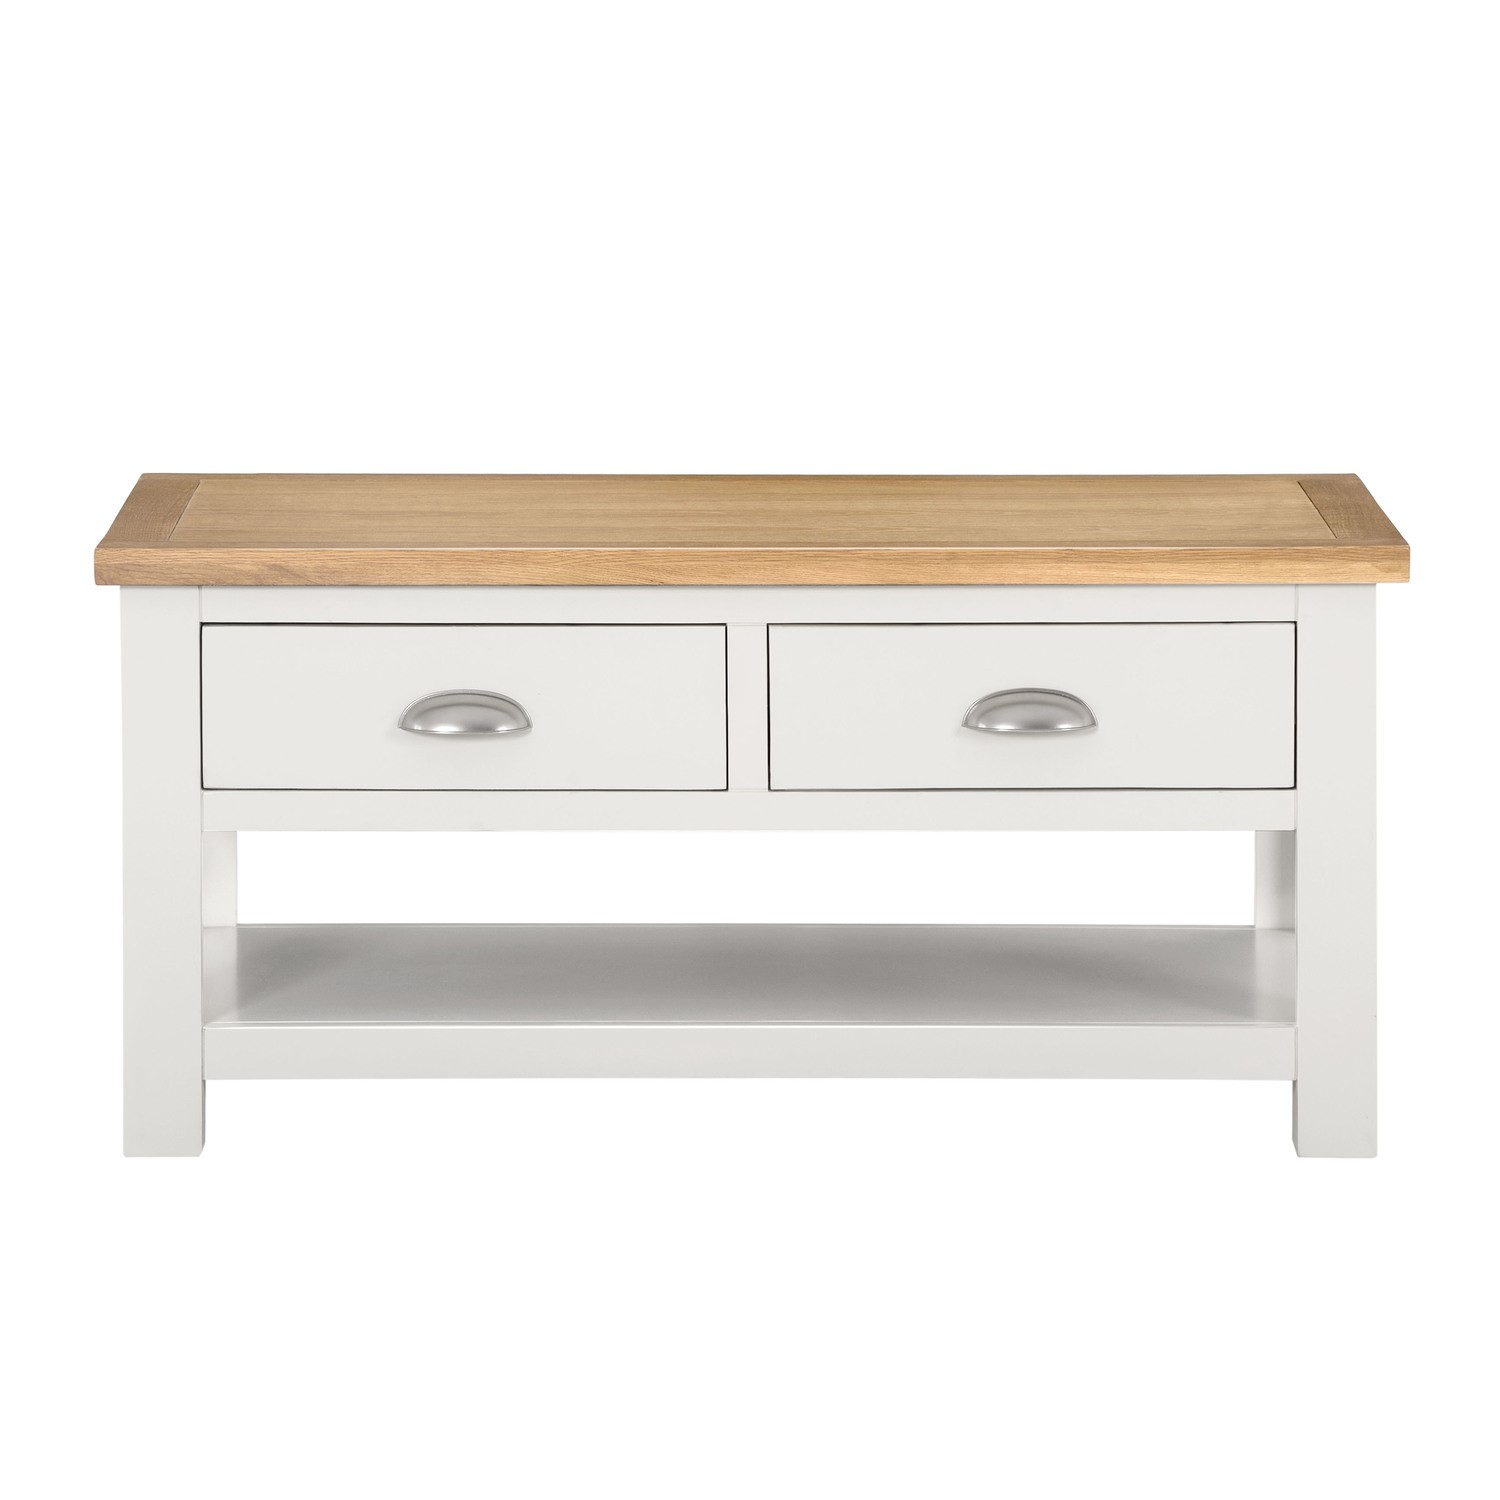 - Willow Coffee Table In Painted Two Tone Cream & Oak With Storage